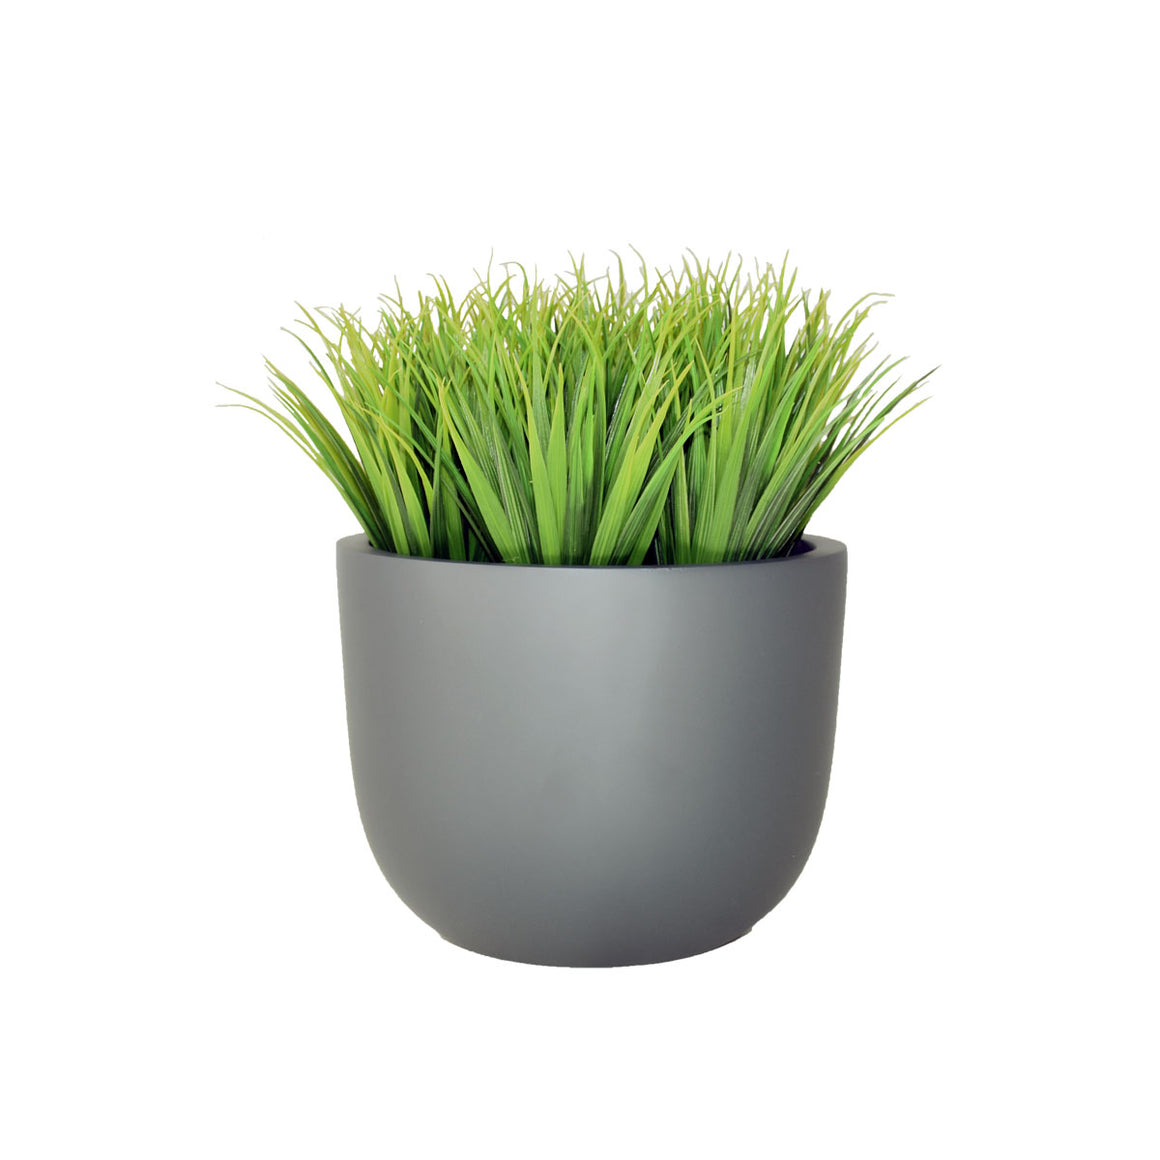 "11"" Round Planter with Grass"